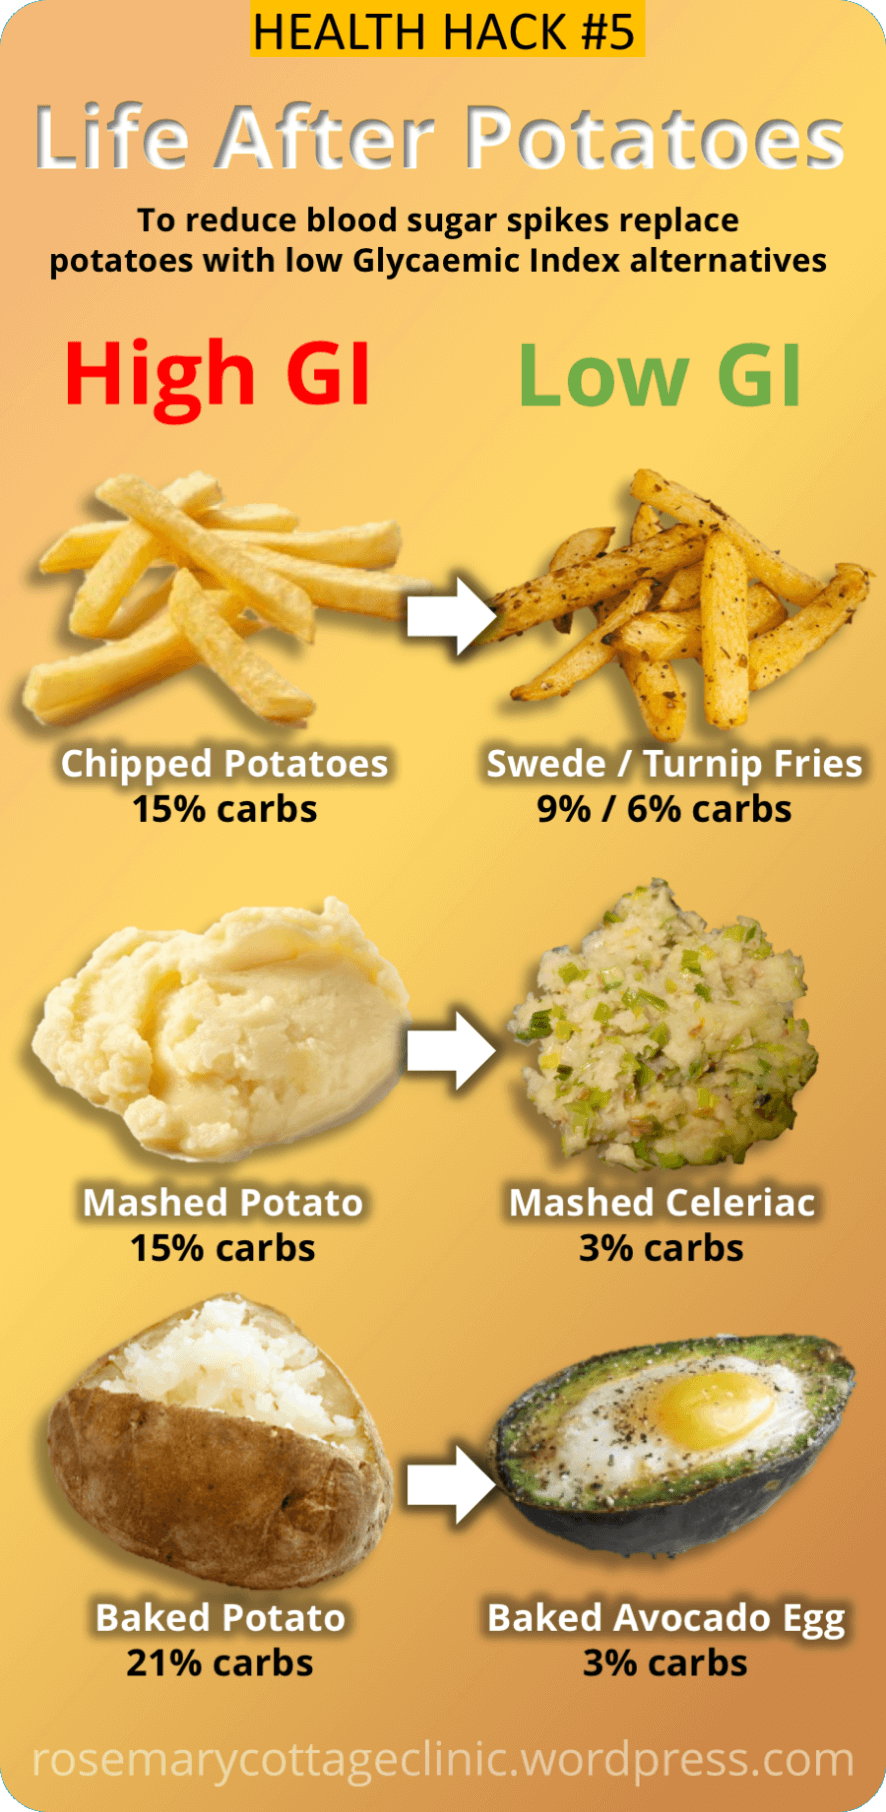 An infographic showing how your glucose control can be improved by swapping out chipped, mashed and baked potato for turnip, celeriac and avocado.